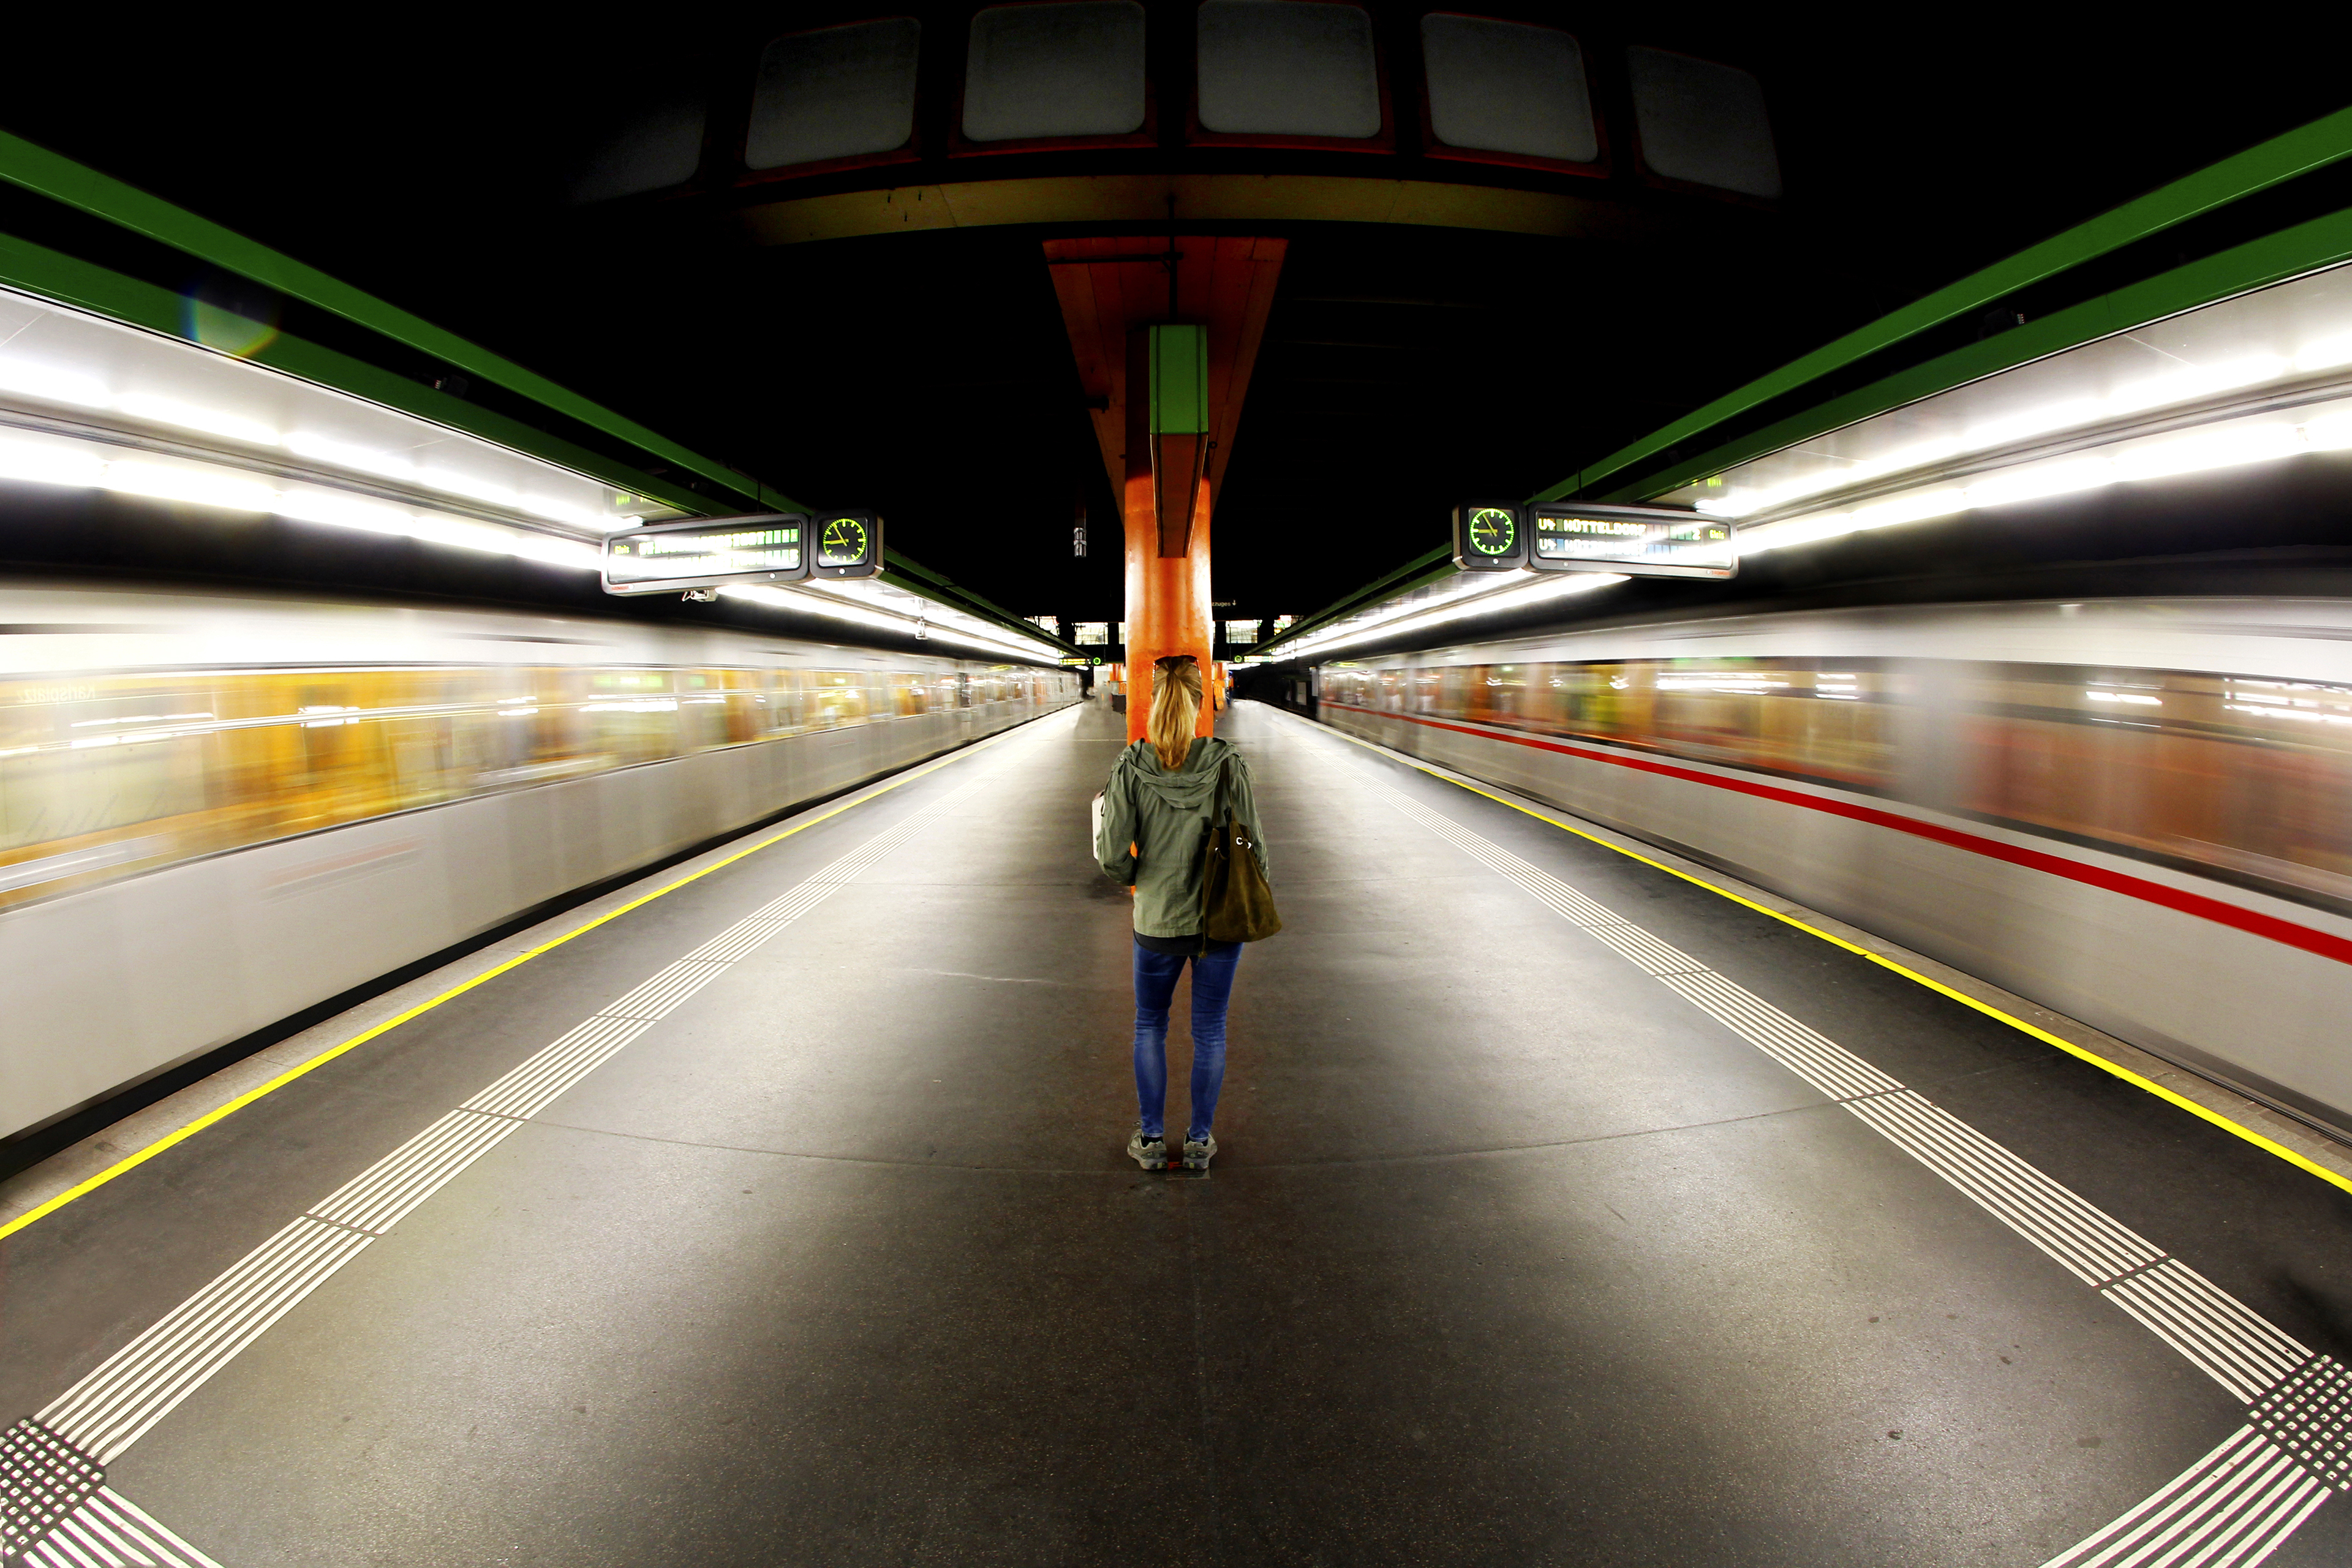 Woman standing in middle of a subway station with two driving subway trains.